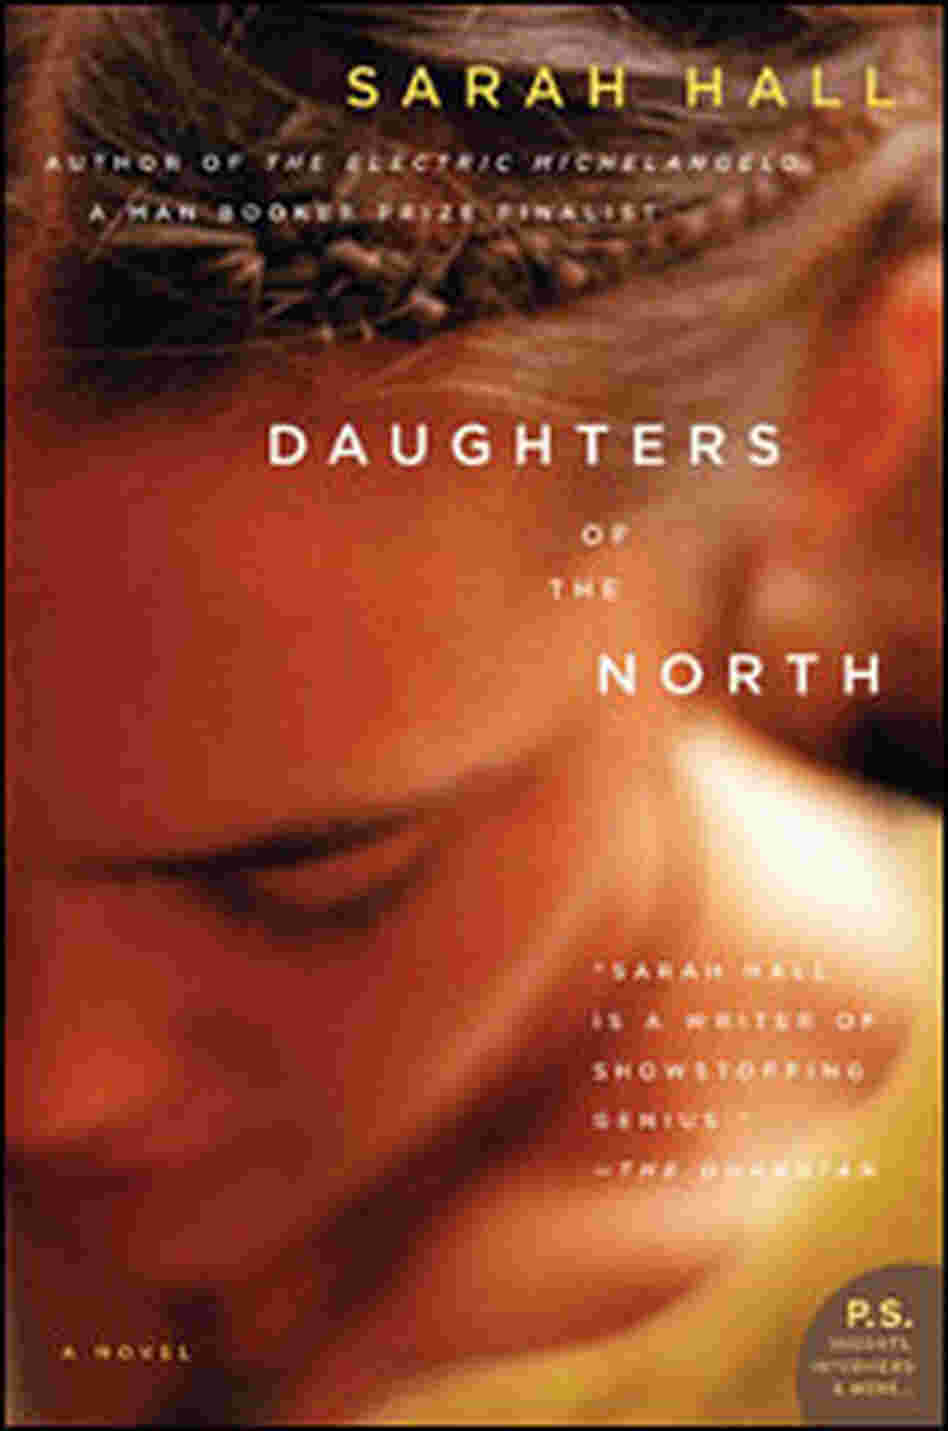 'Daughters of the North'